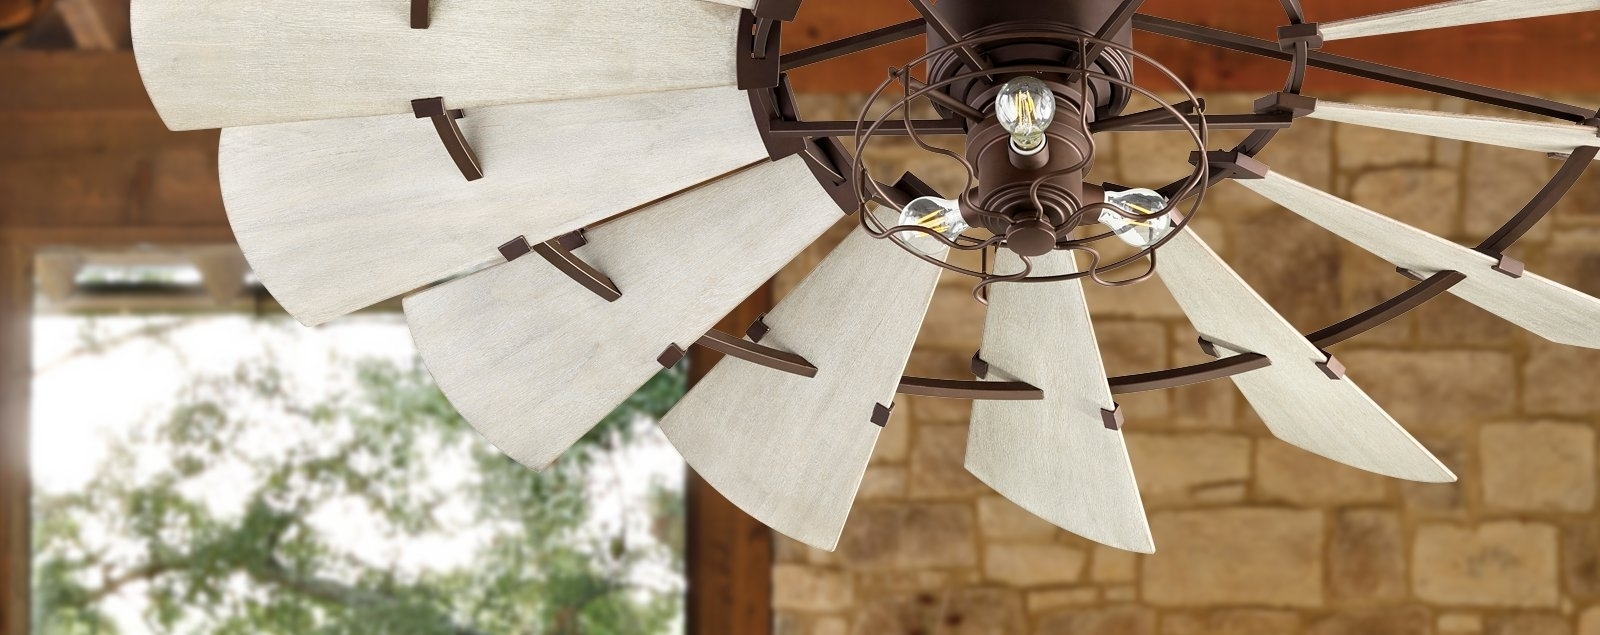 Outdoor Windmill Ceiling Fans With Light Regarding Latest Windmill Ceiling Fans (View 15 of 20)